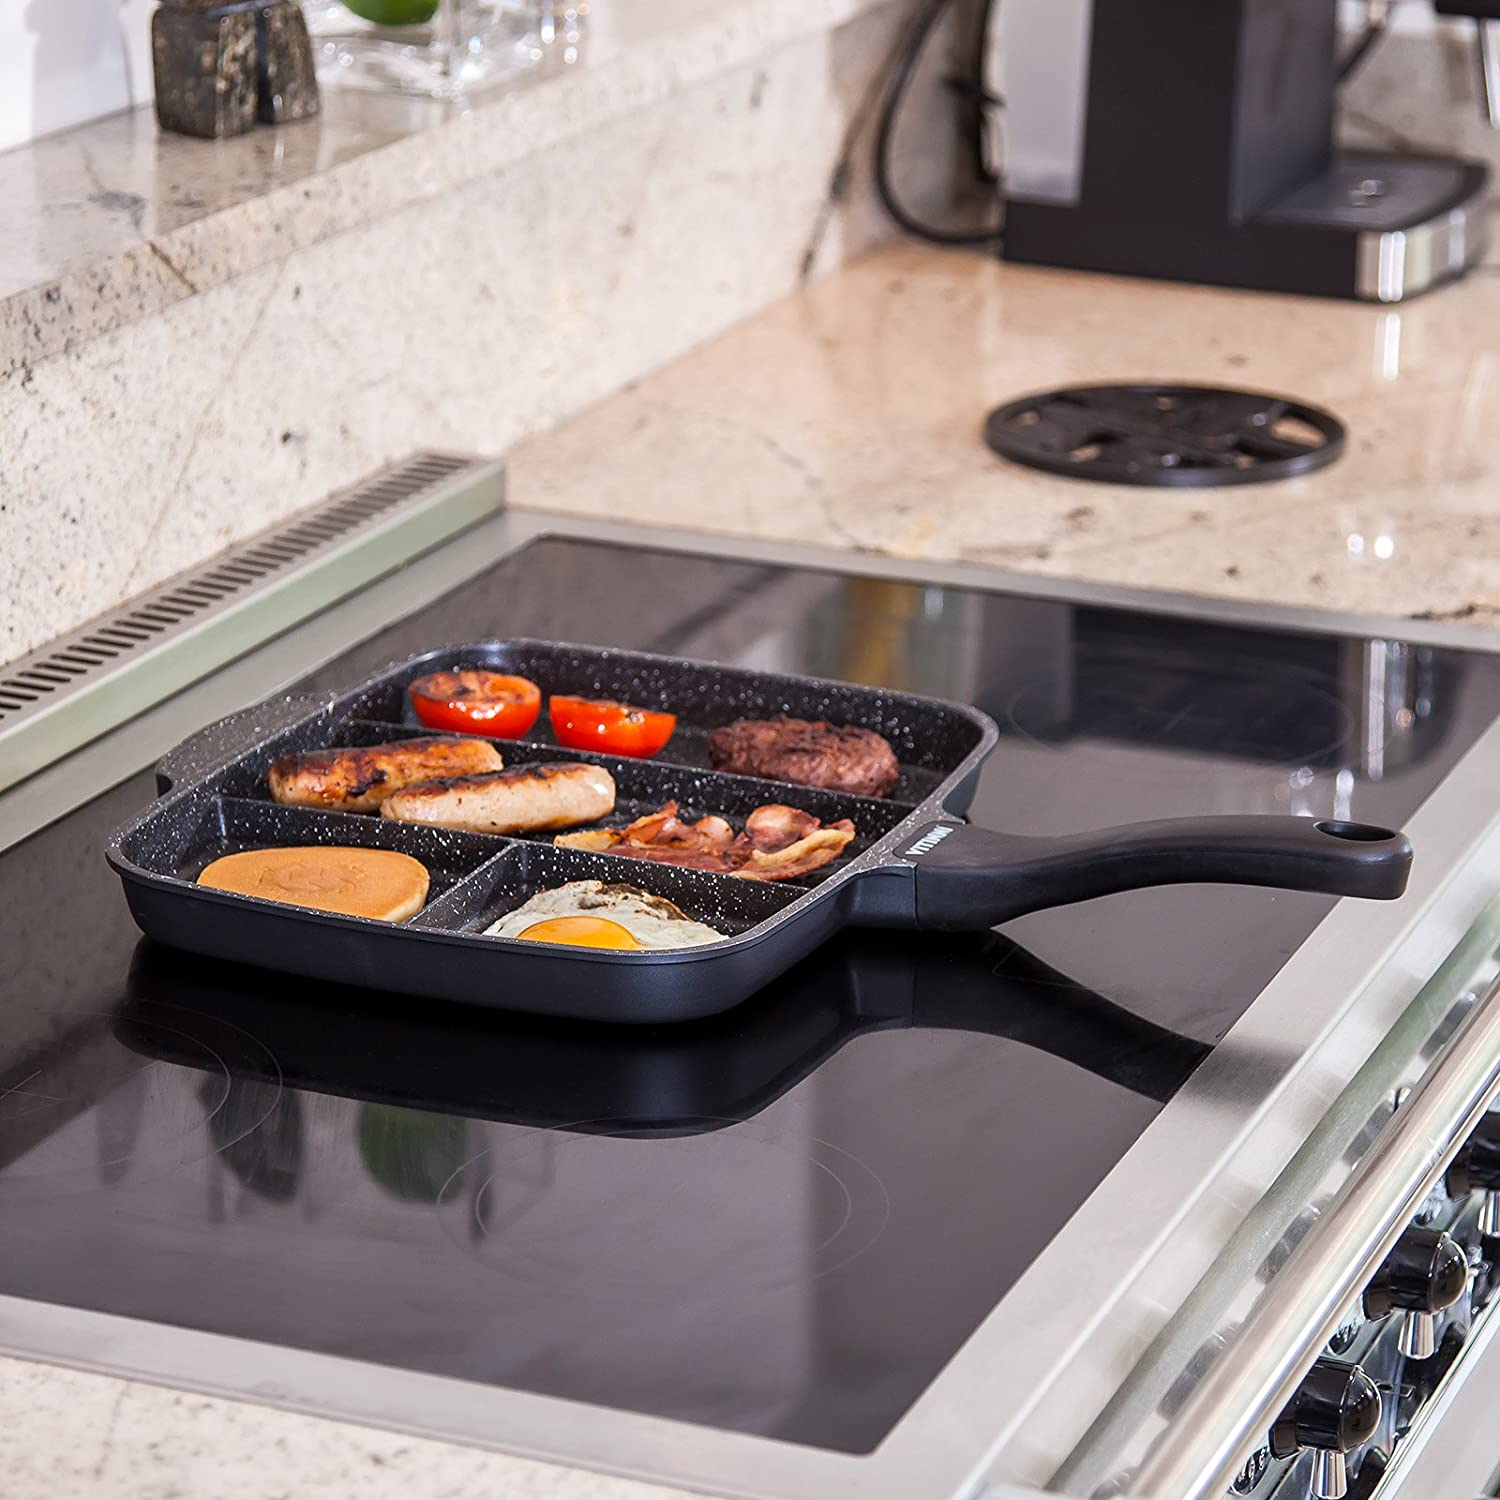 Vitinni All-in-One Frying Pan with Four Section